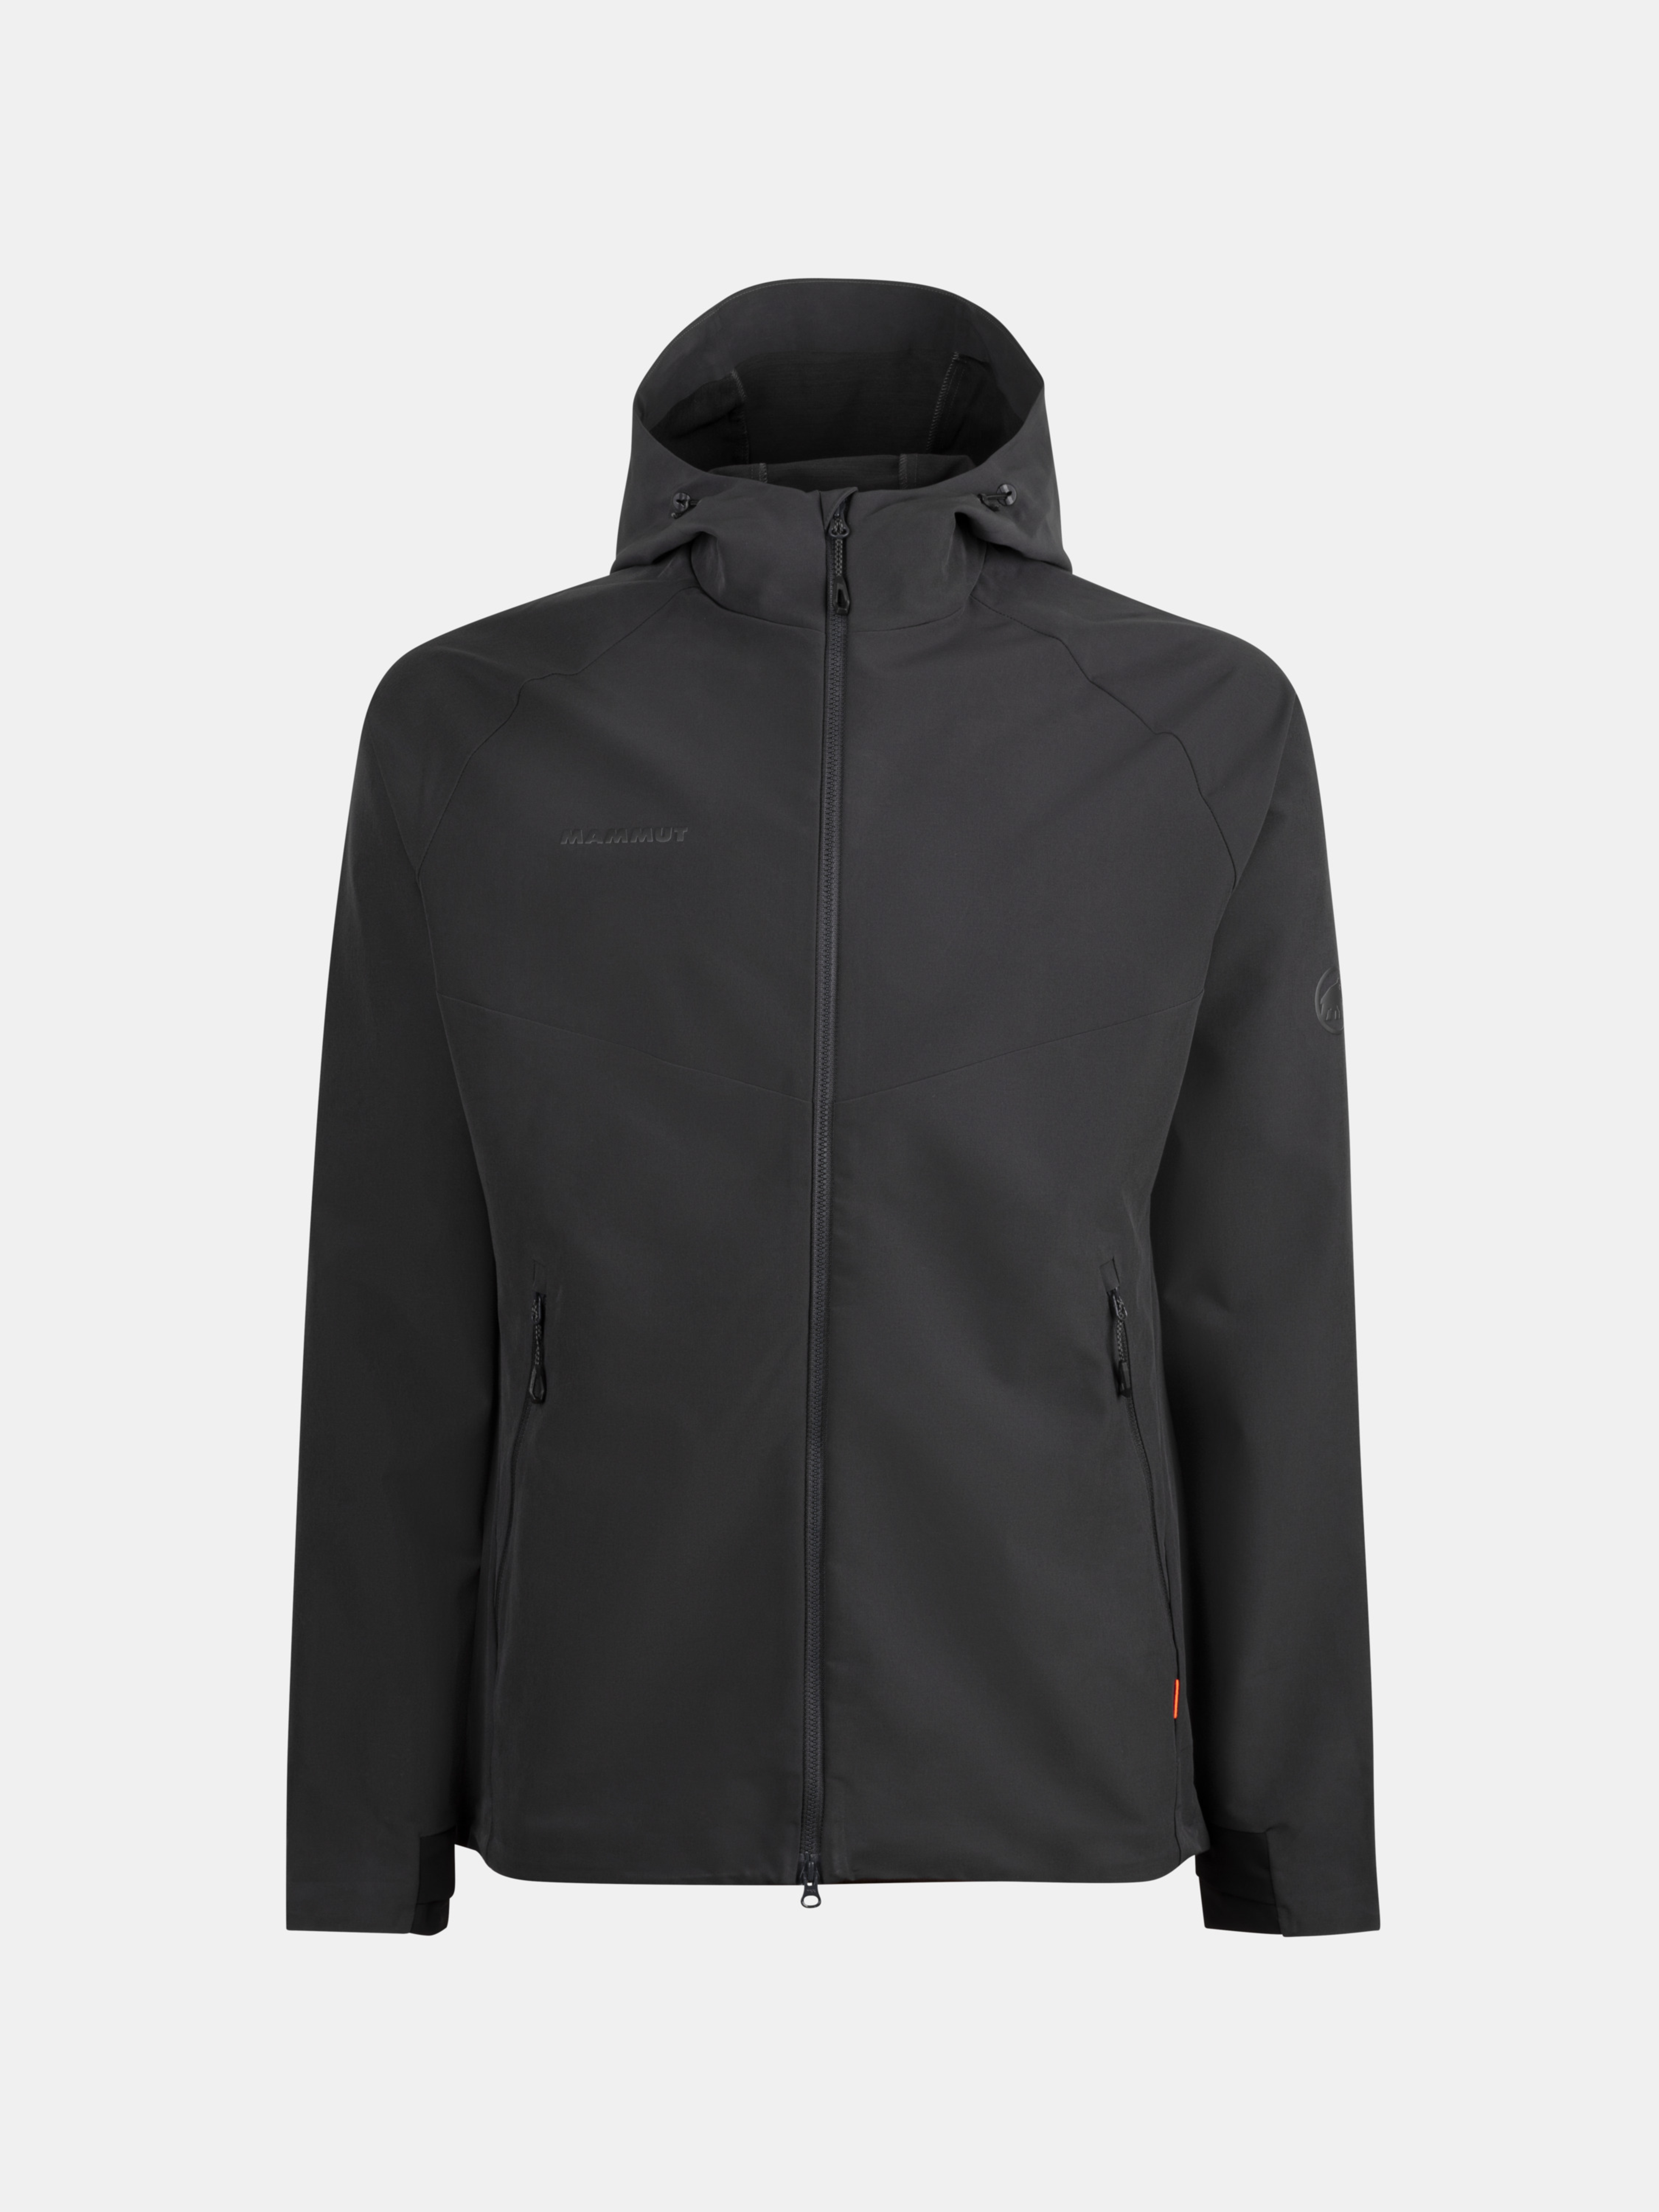 Macun SO Hooded Jacket Men product image